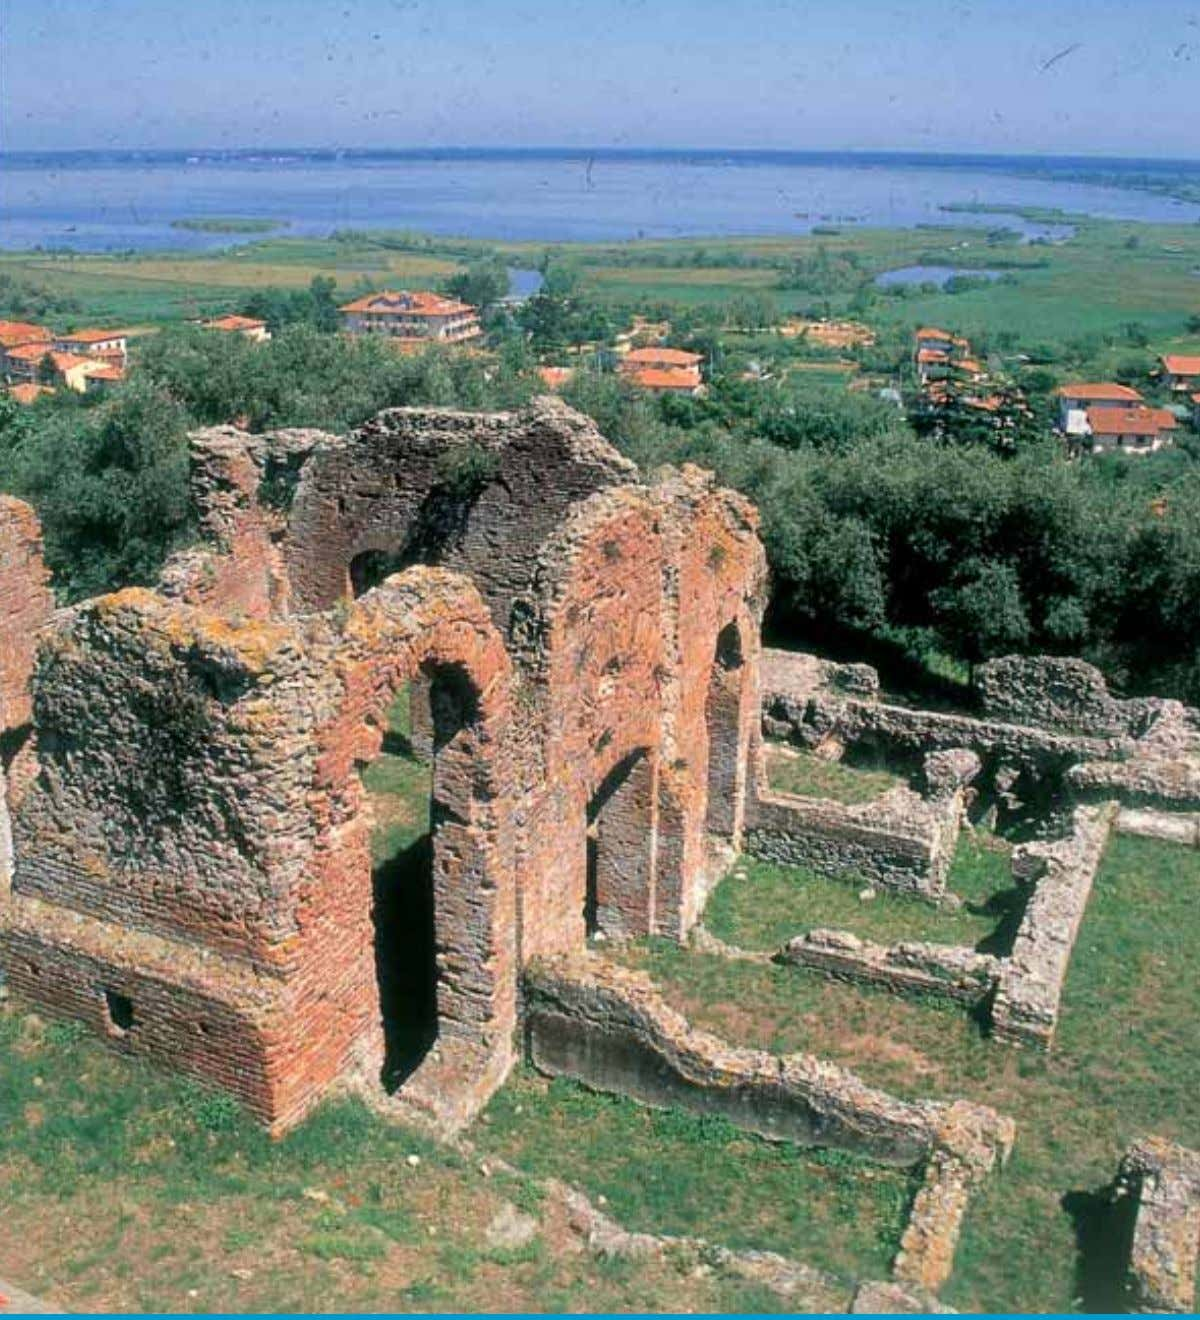 The human presence in Versilia dates back to the Neolithic Age and many traces still